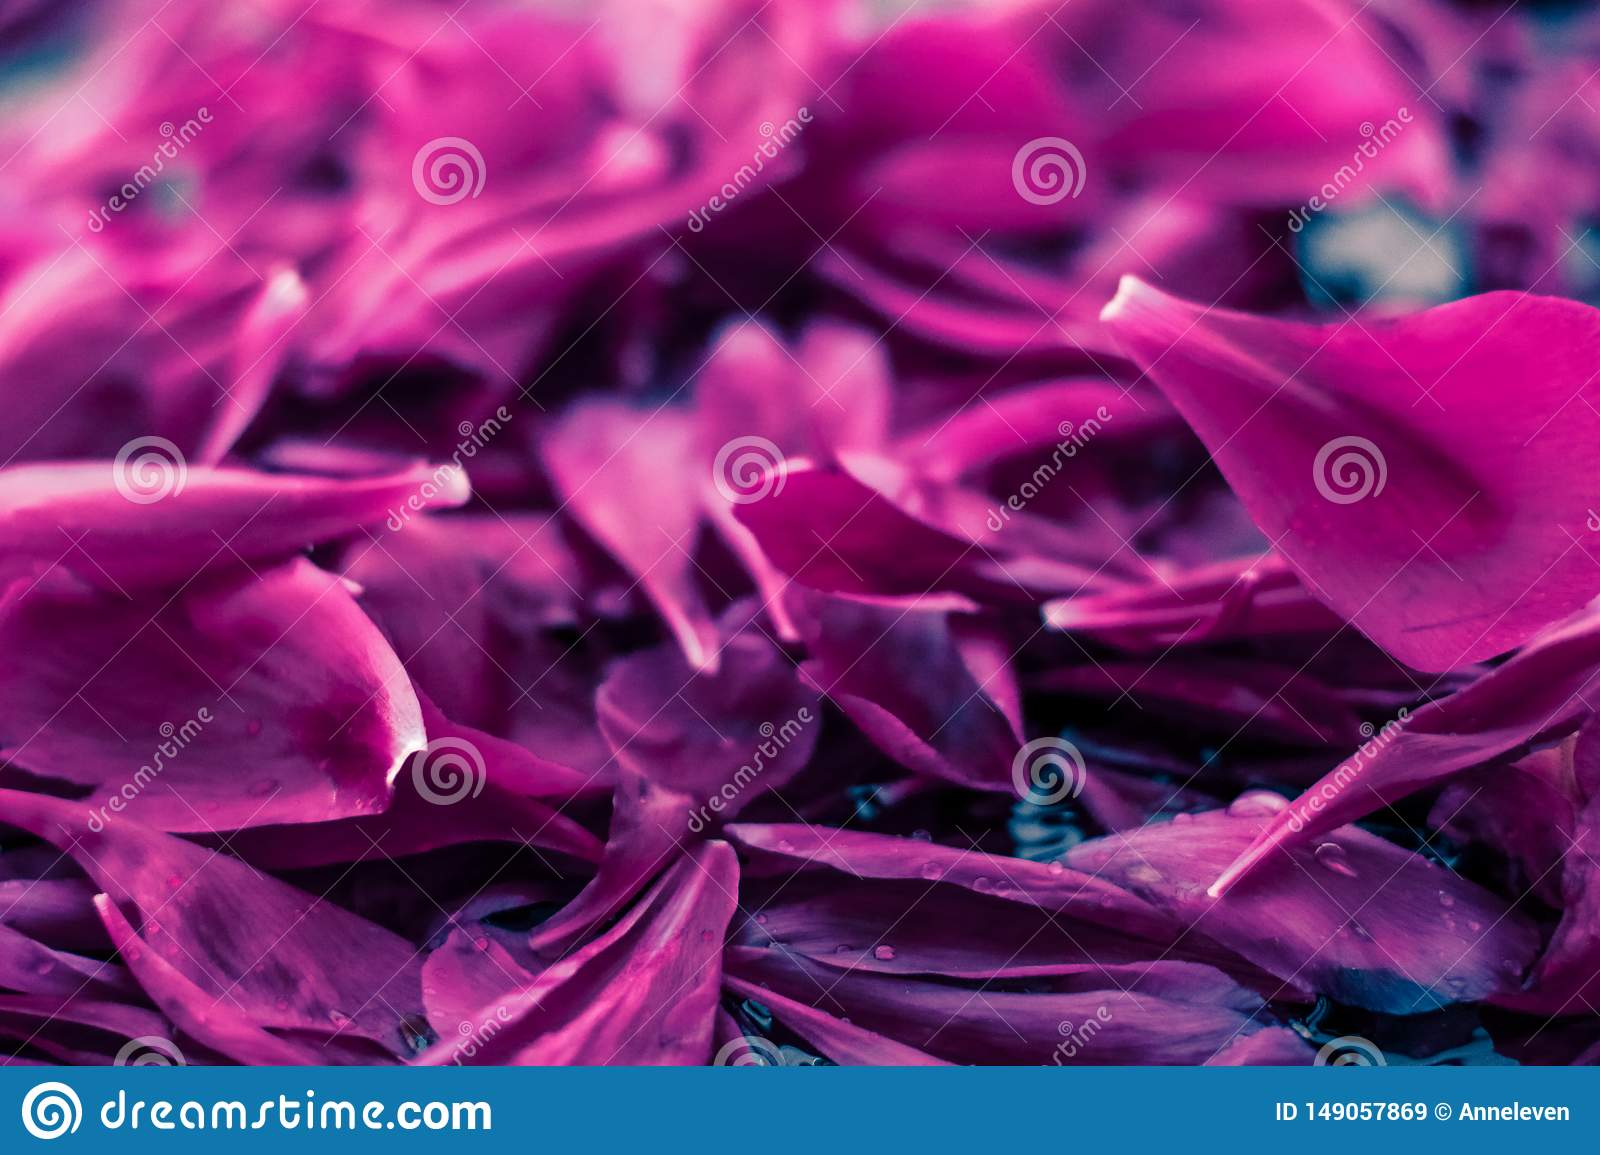 Abstract floral background, purple flower petals in water